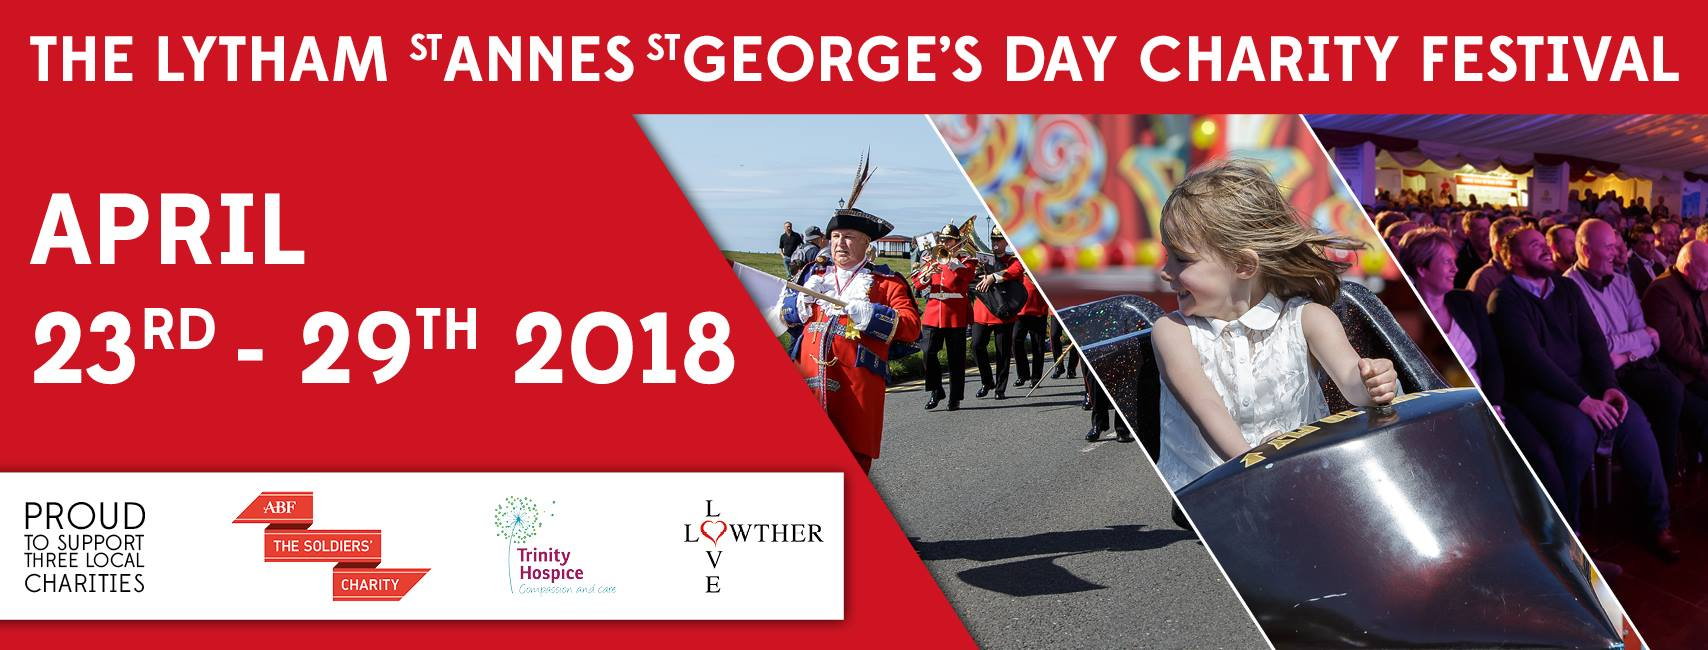 Lytham St Georges Day Charity Festival 2018